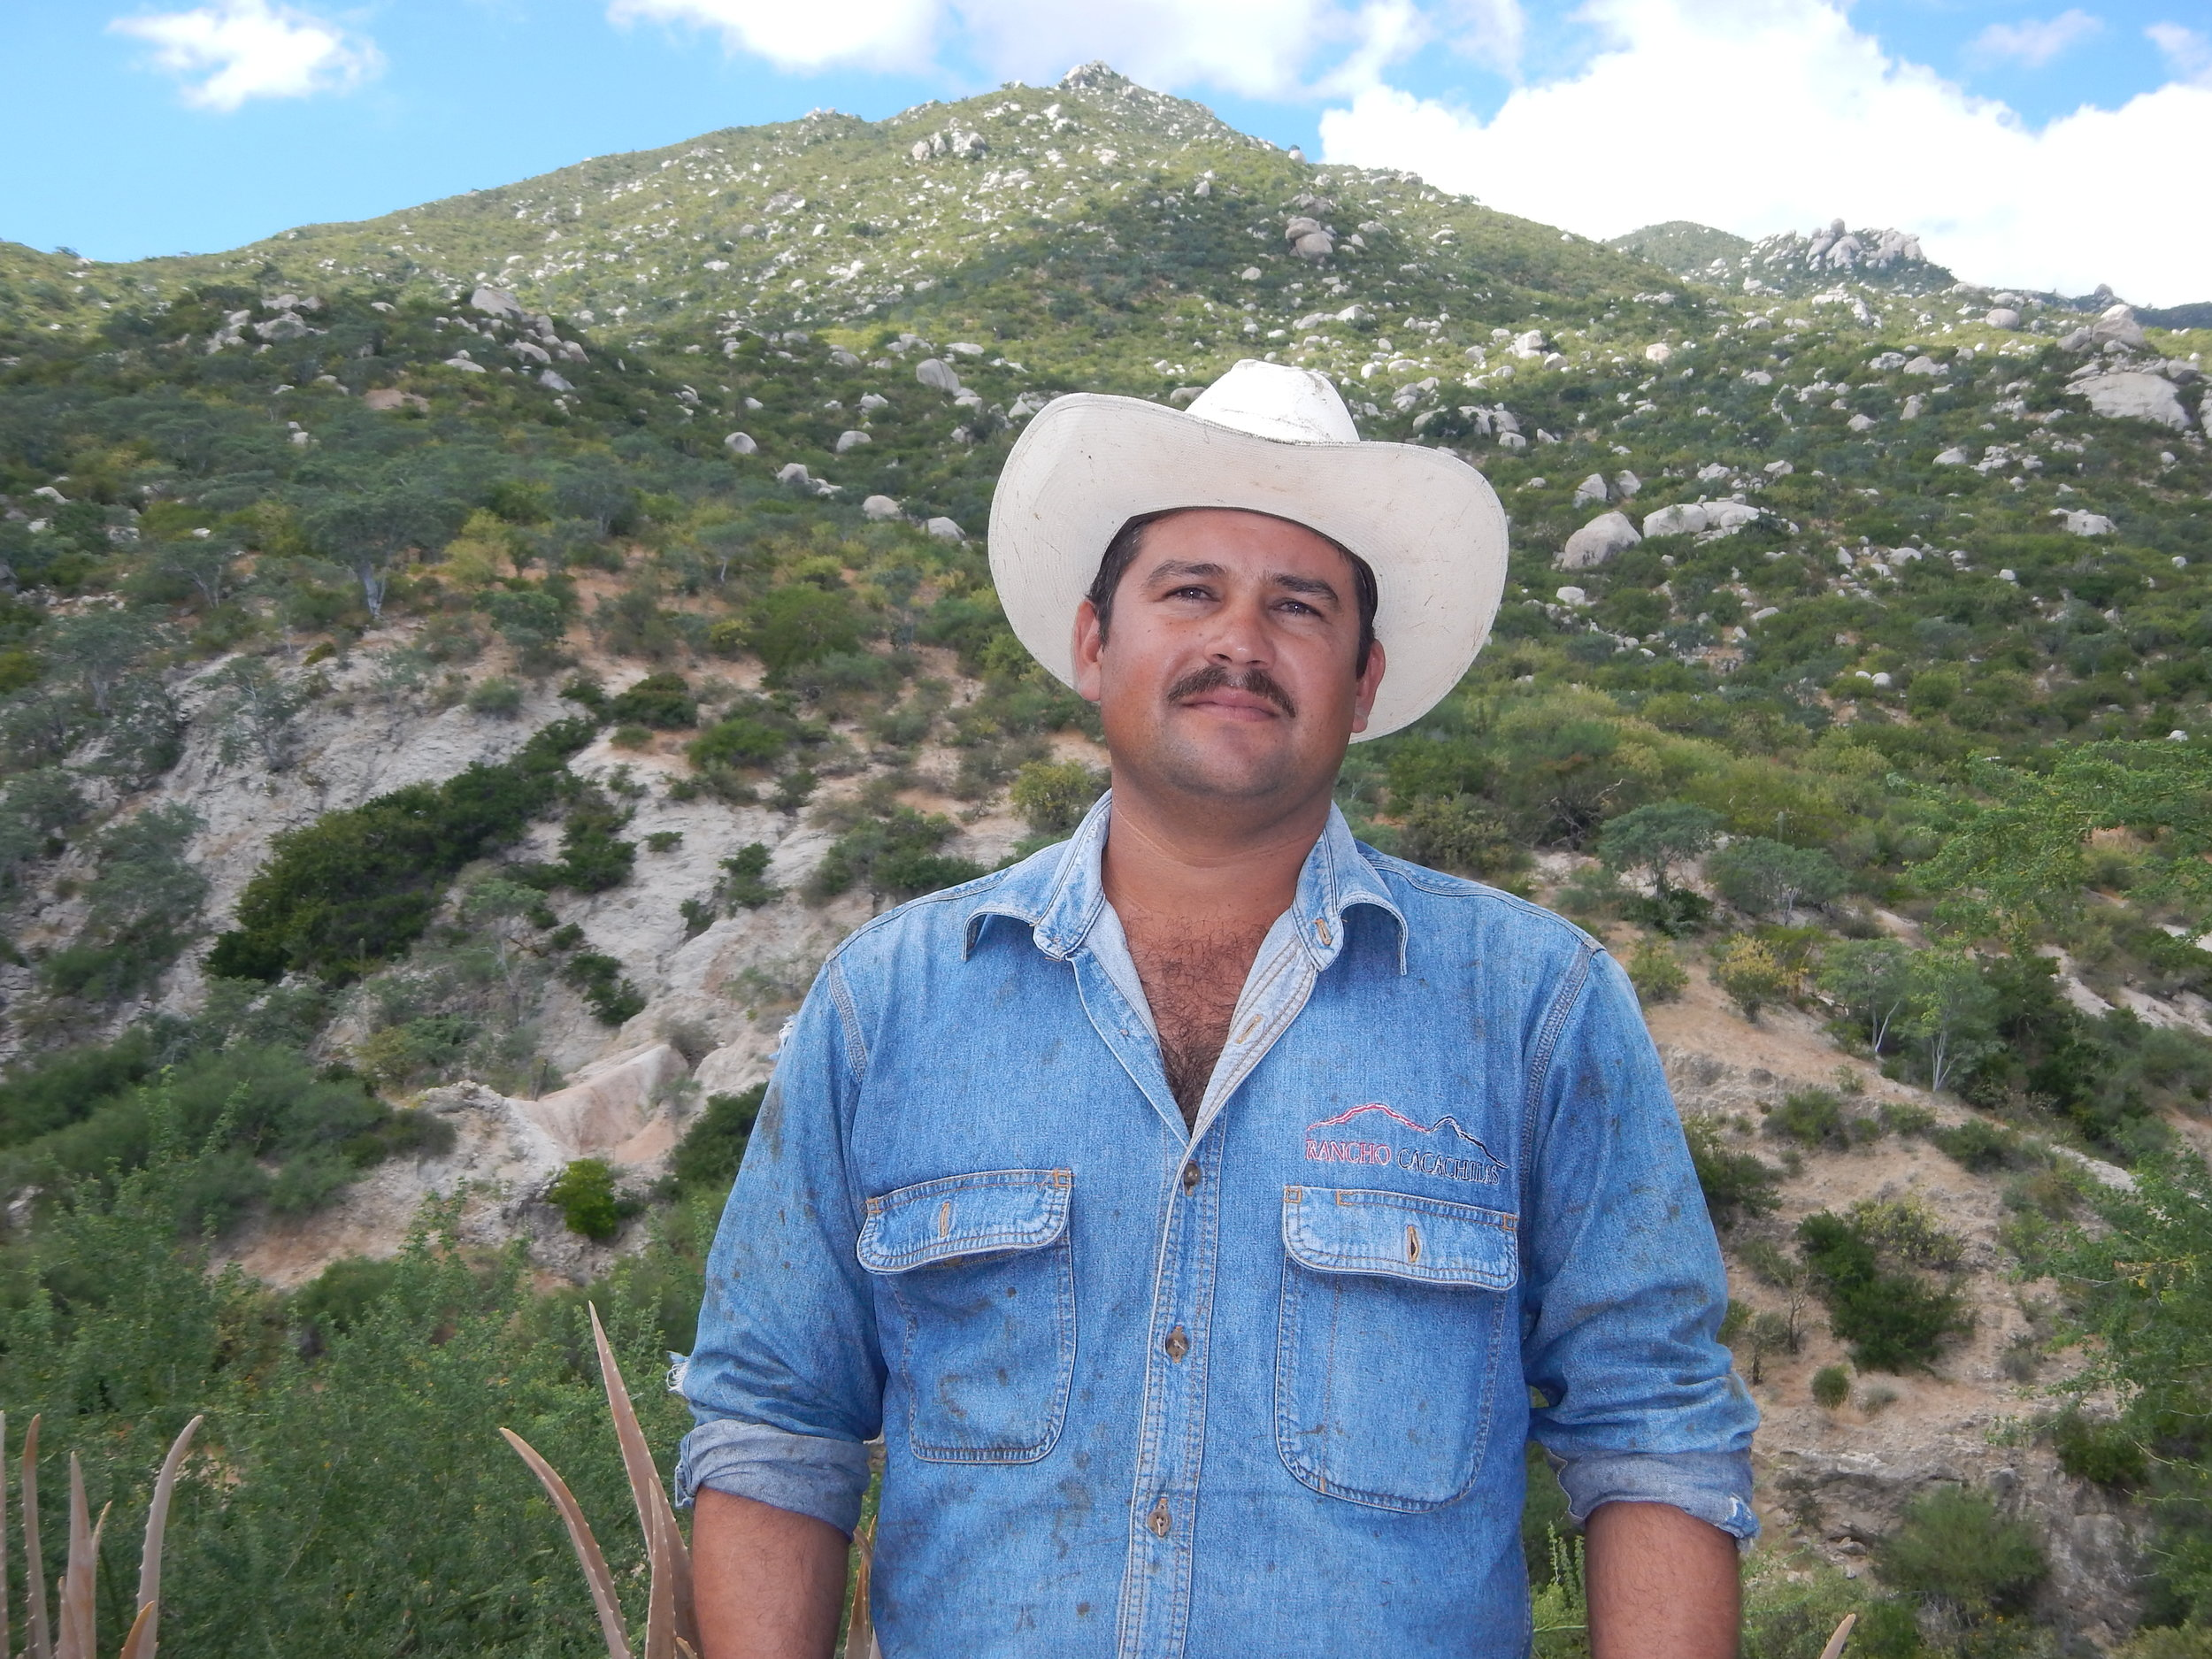 Israel Aviles Meza   Israel is the vaquero in charge of the cattle, from breeding, births, and culling selection. He also takes care of the grazing program, carefully moving with his team the cattle around the different paddocks to create the desired animal impact.